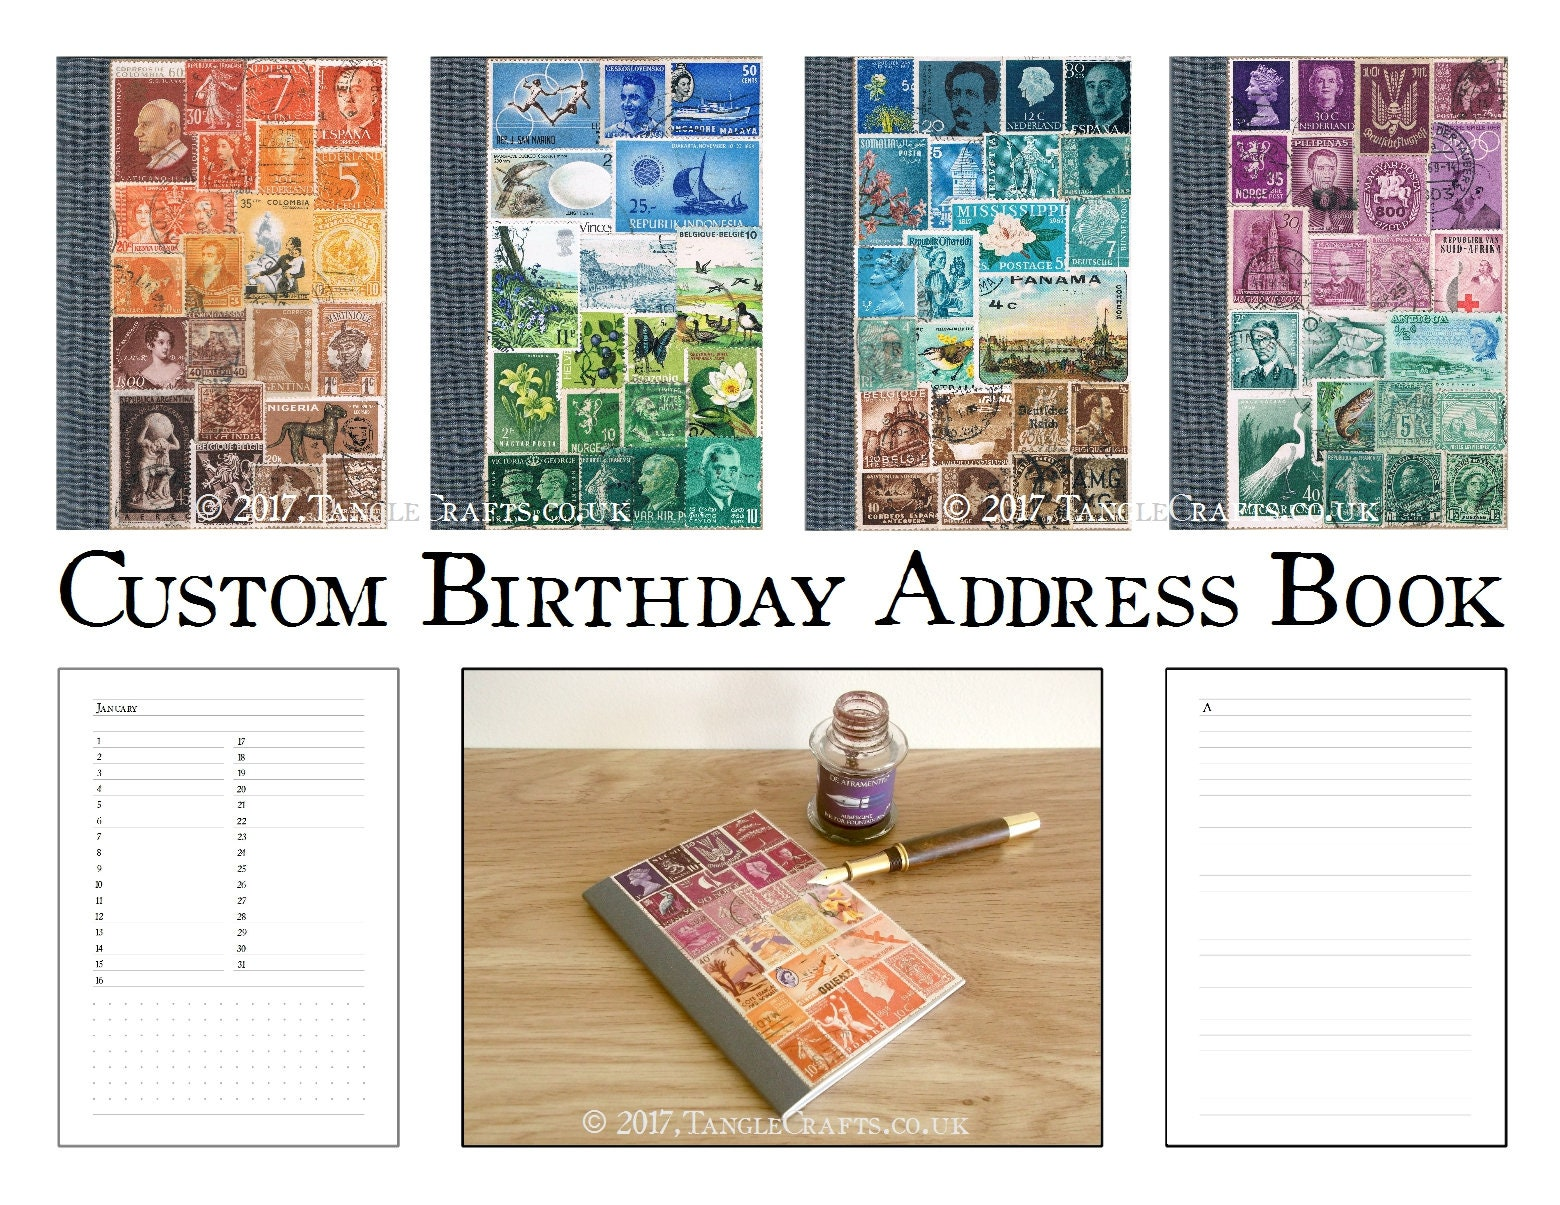 Birthday & Address Book | A6 Monthly Planner A-Z Contacts List